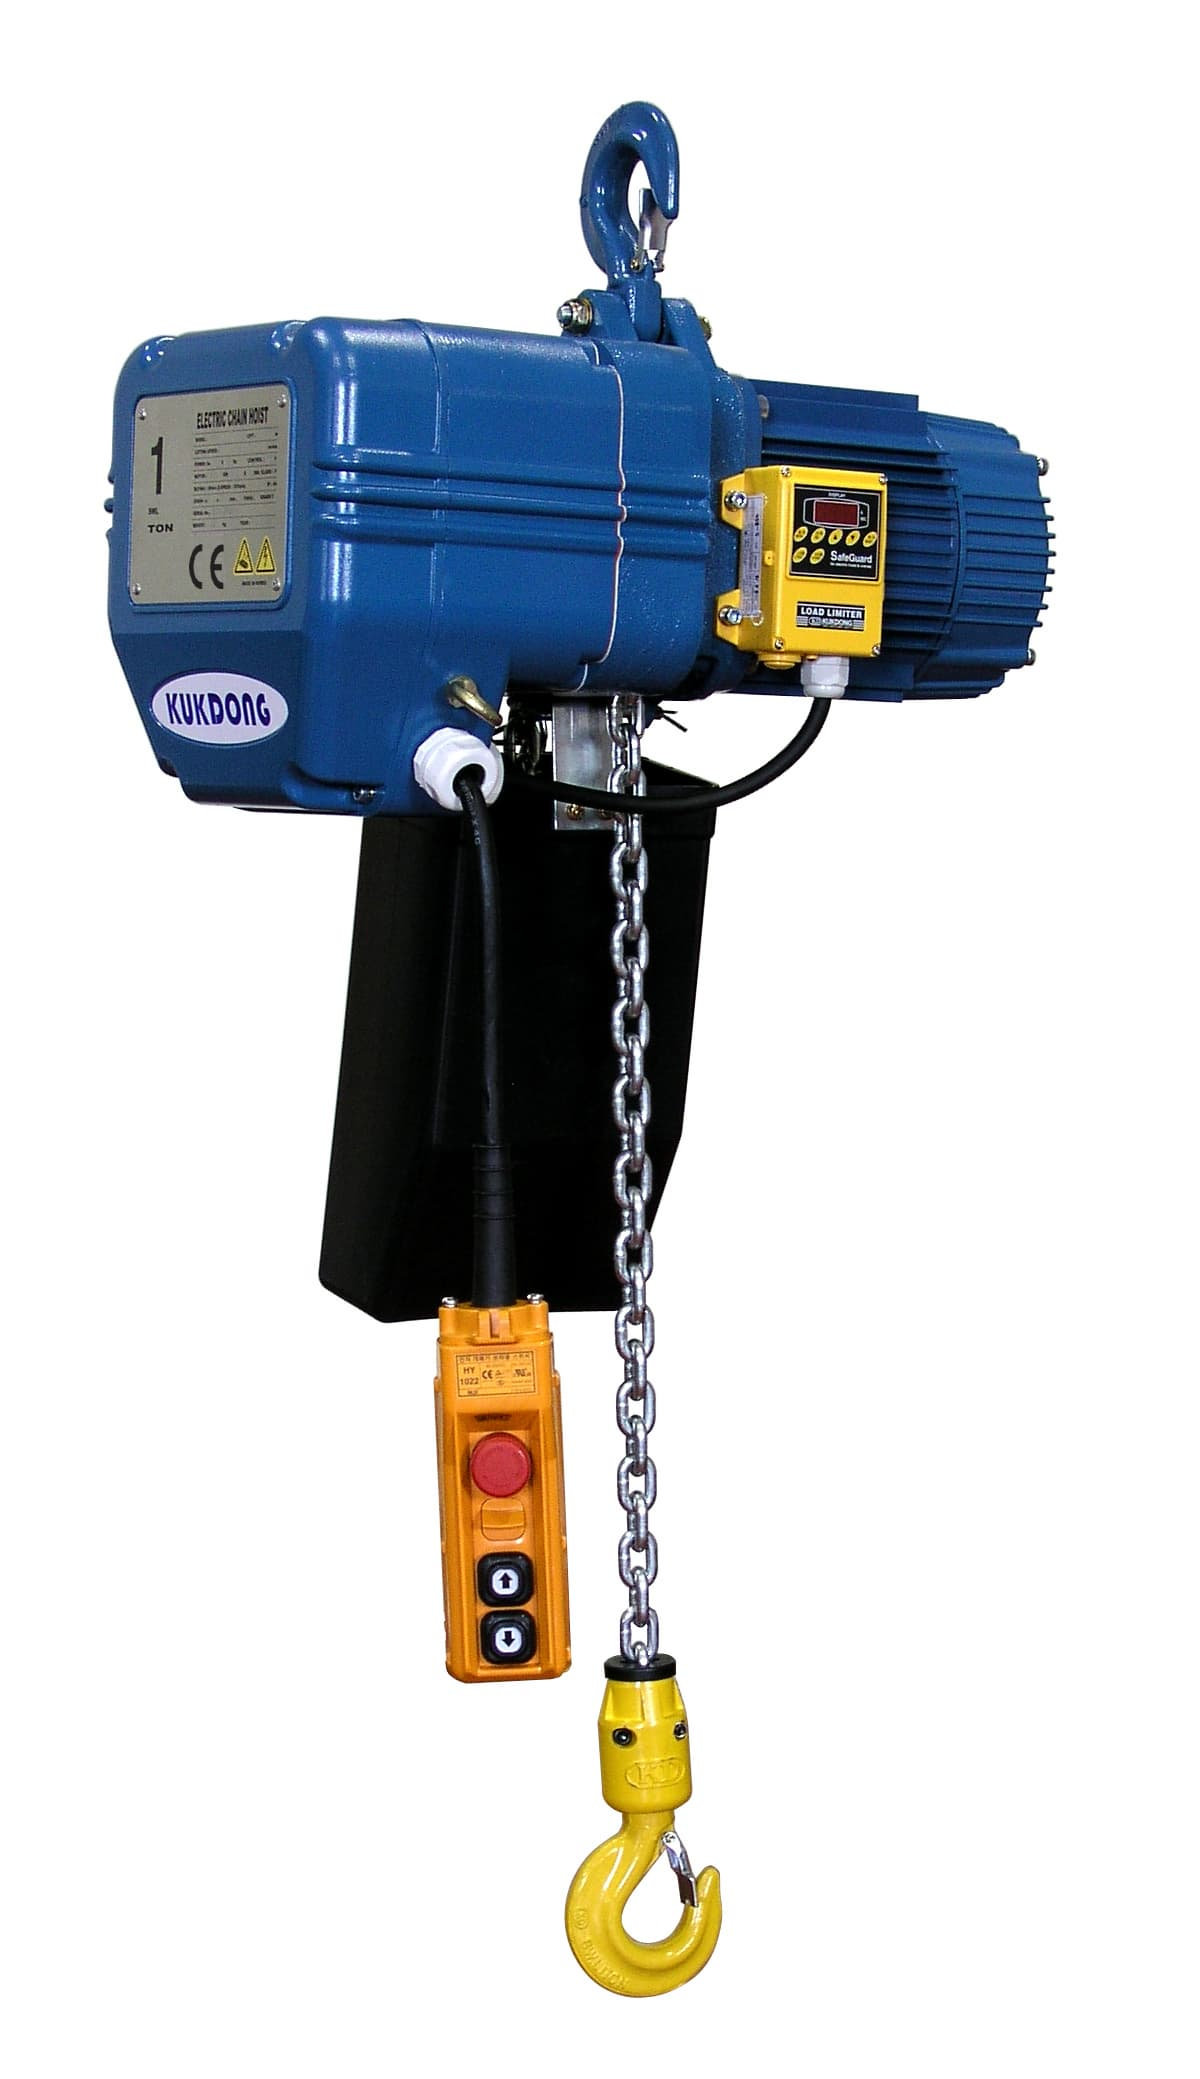 Kukdong electric chain hoist kd 1 type from kuk dong hoist for 1 4 ton chain motor